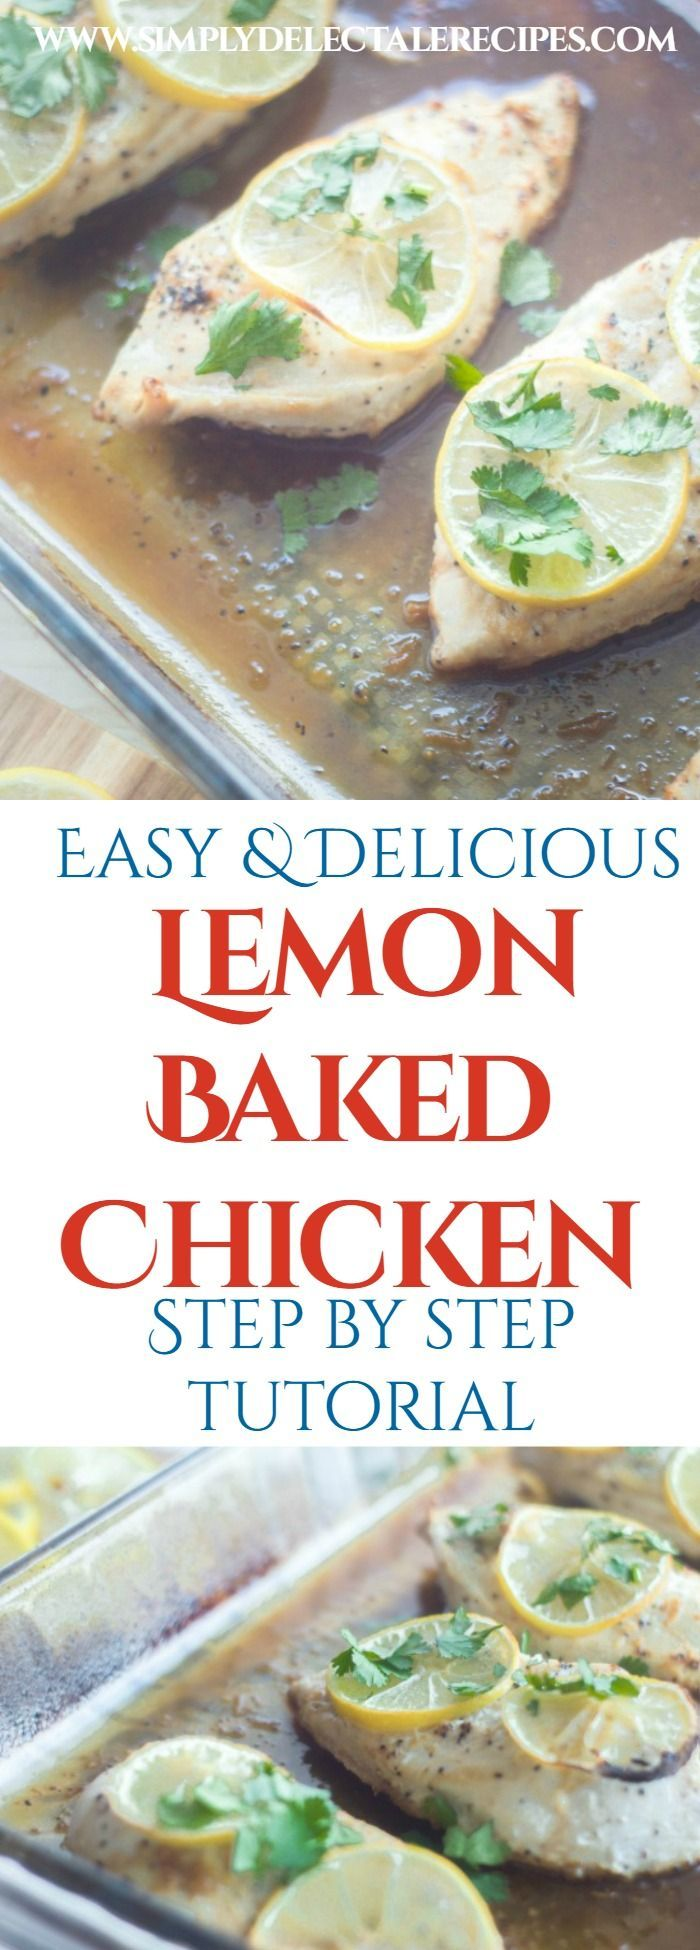 Need a easy chicken recipe? We love this super simple lemon baked chicken! With only a few ingredients and less than 5 minutes prep, what's not to love about this easy chicken recipe?  via @jacquelineSDR